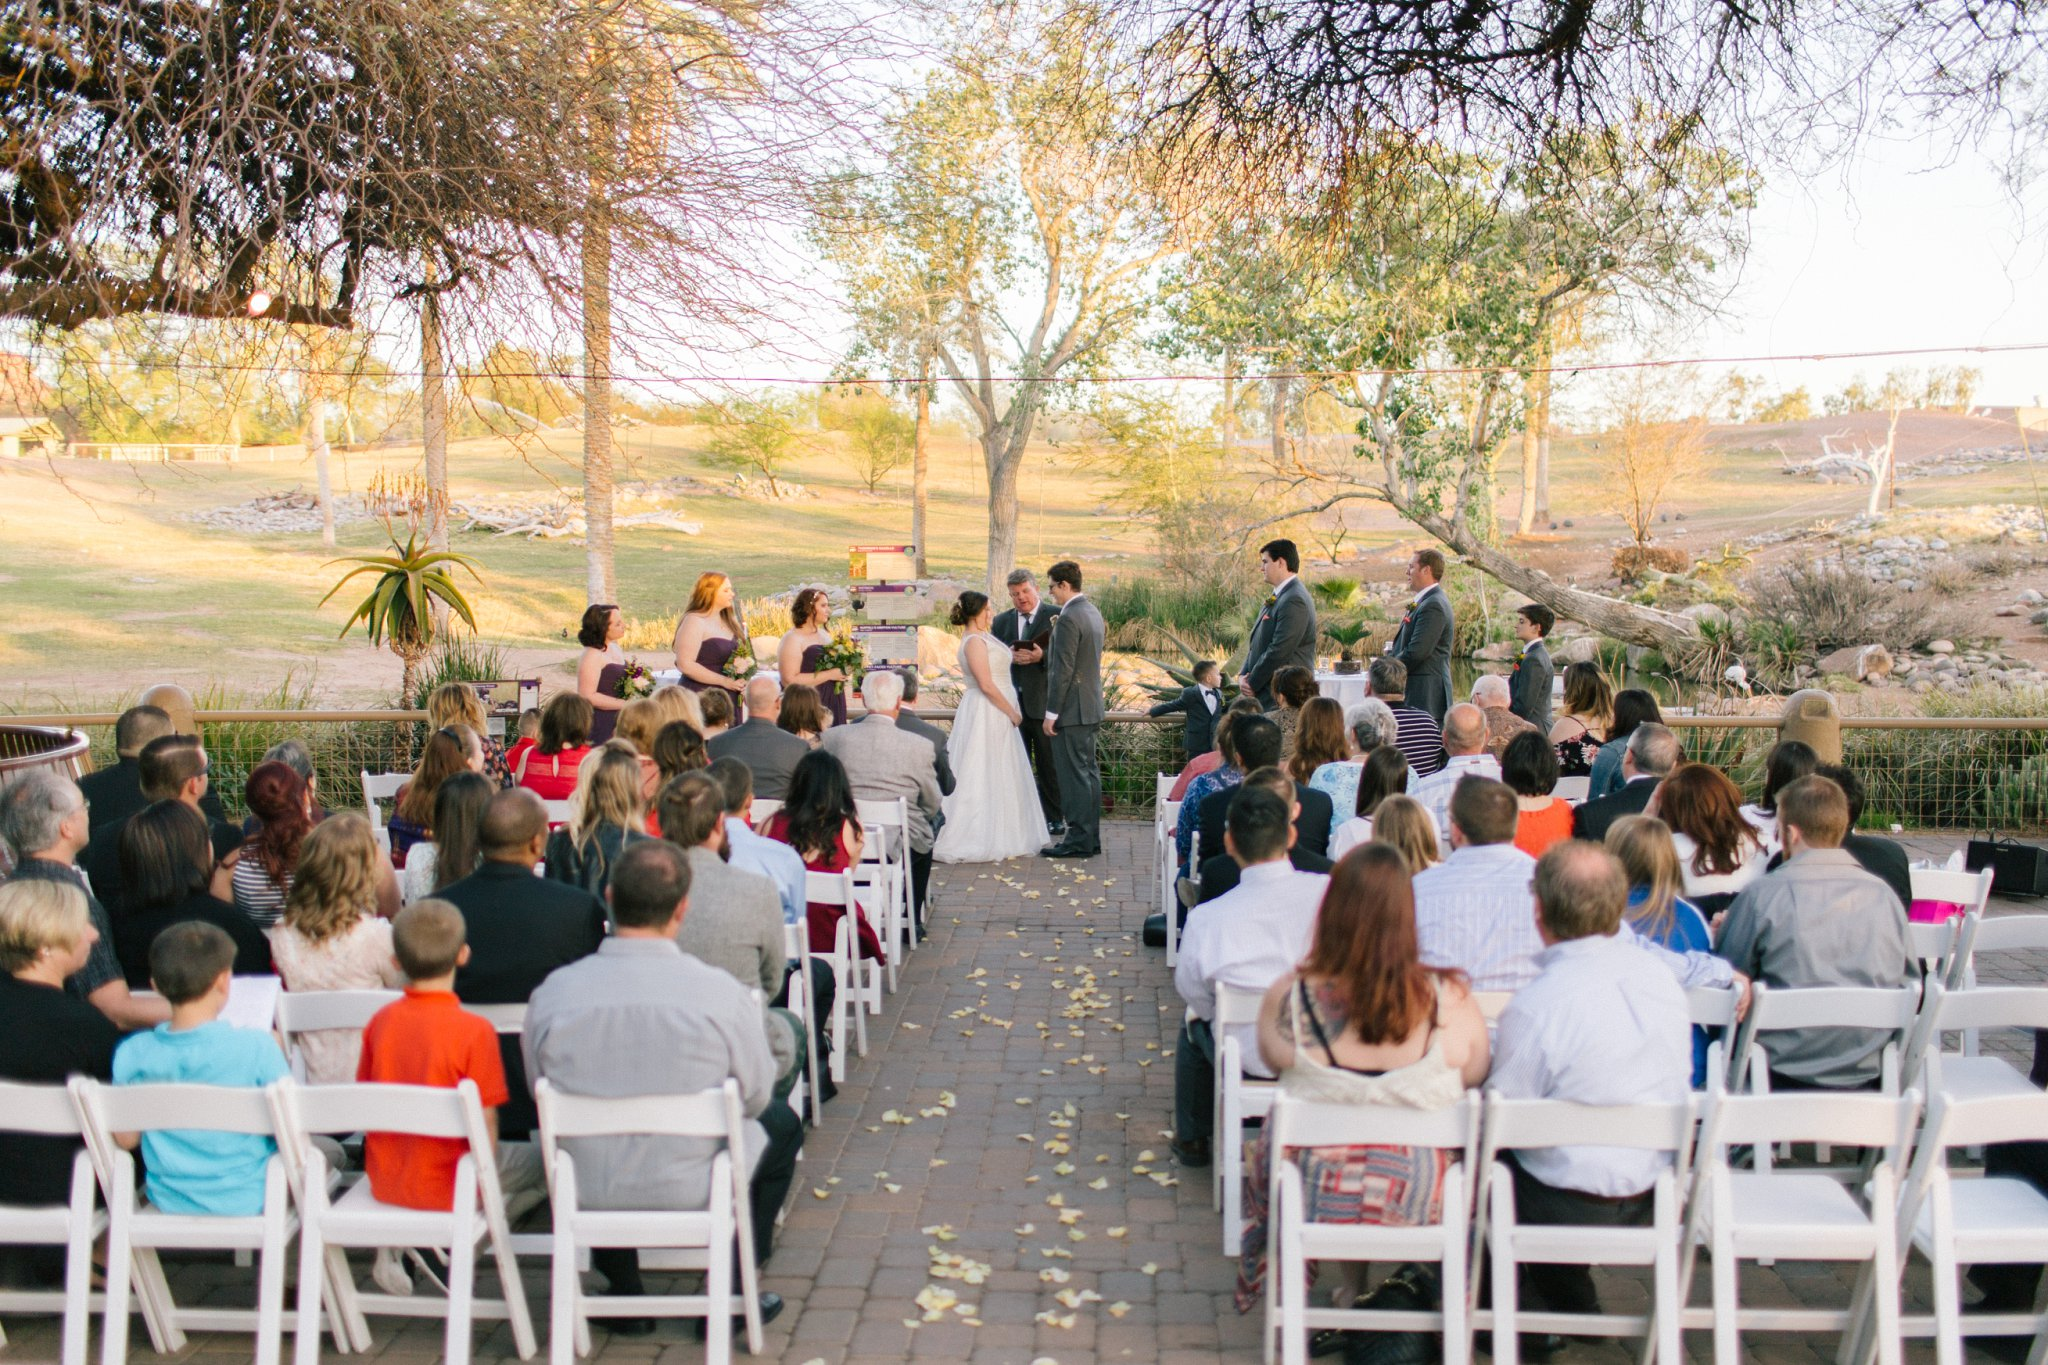 Outdoor natural wedding venues in phoenix arizona tips for phoenix zoo wedding ceremony junglespirit Gallery